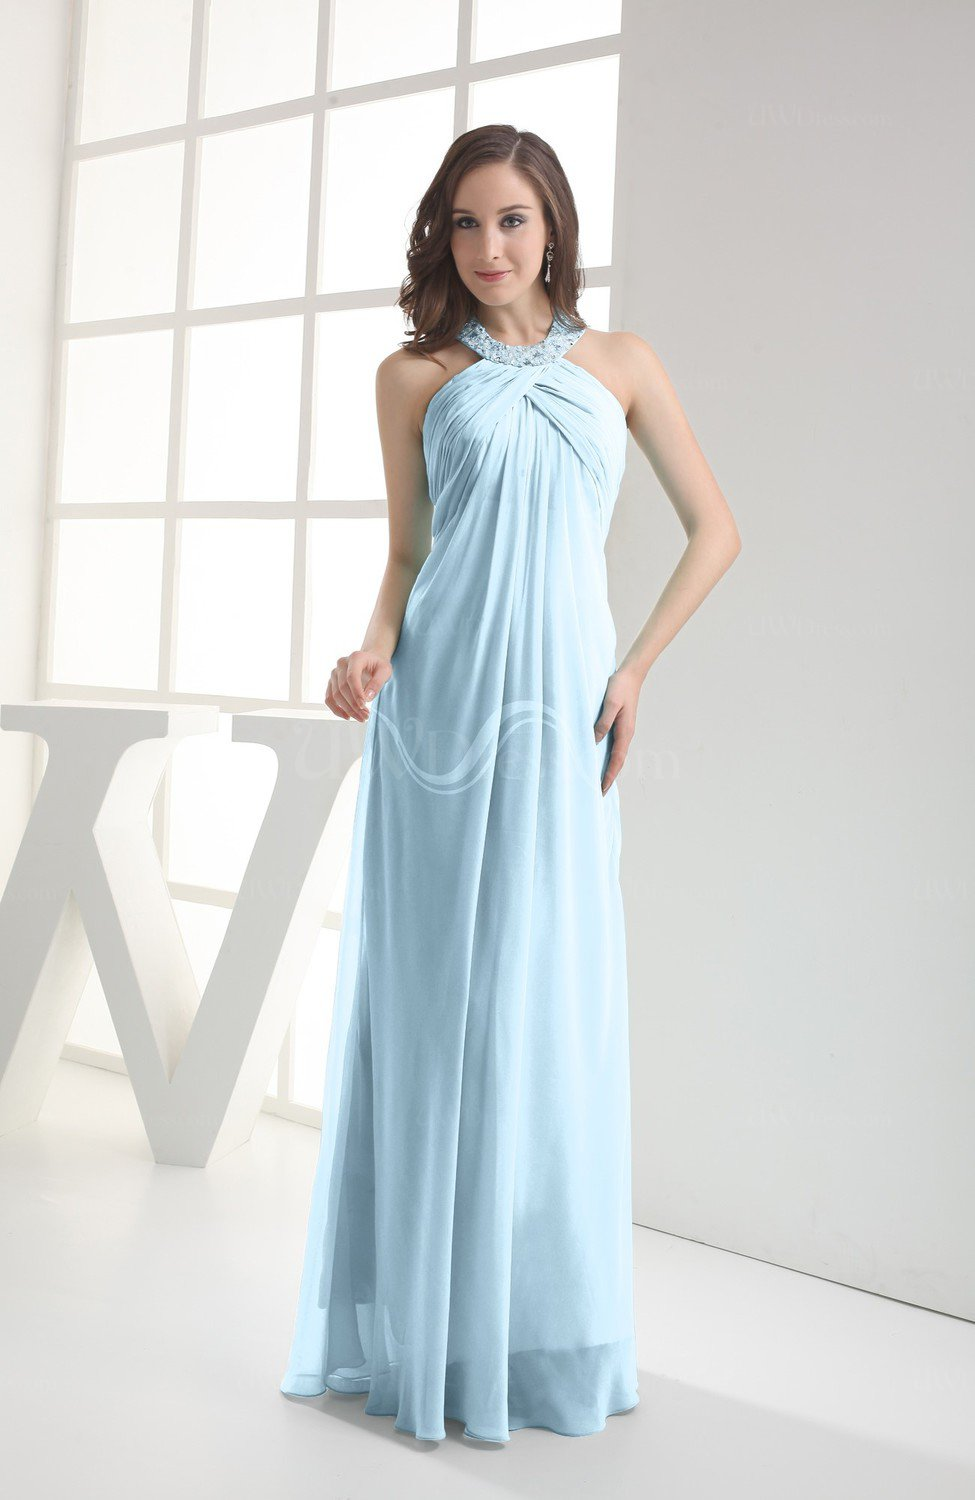 c78e24126 Ice Blue Modest Sleeveless Backless Chiffon Floor Length Ruching Bridesmaid  Dresses (Style D80113)